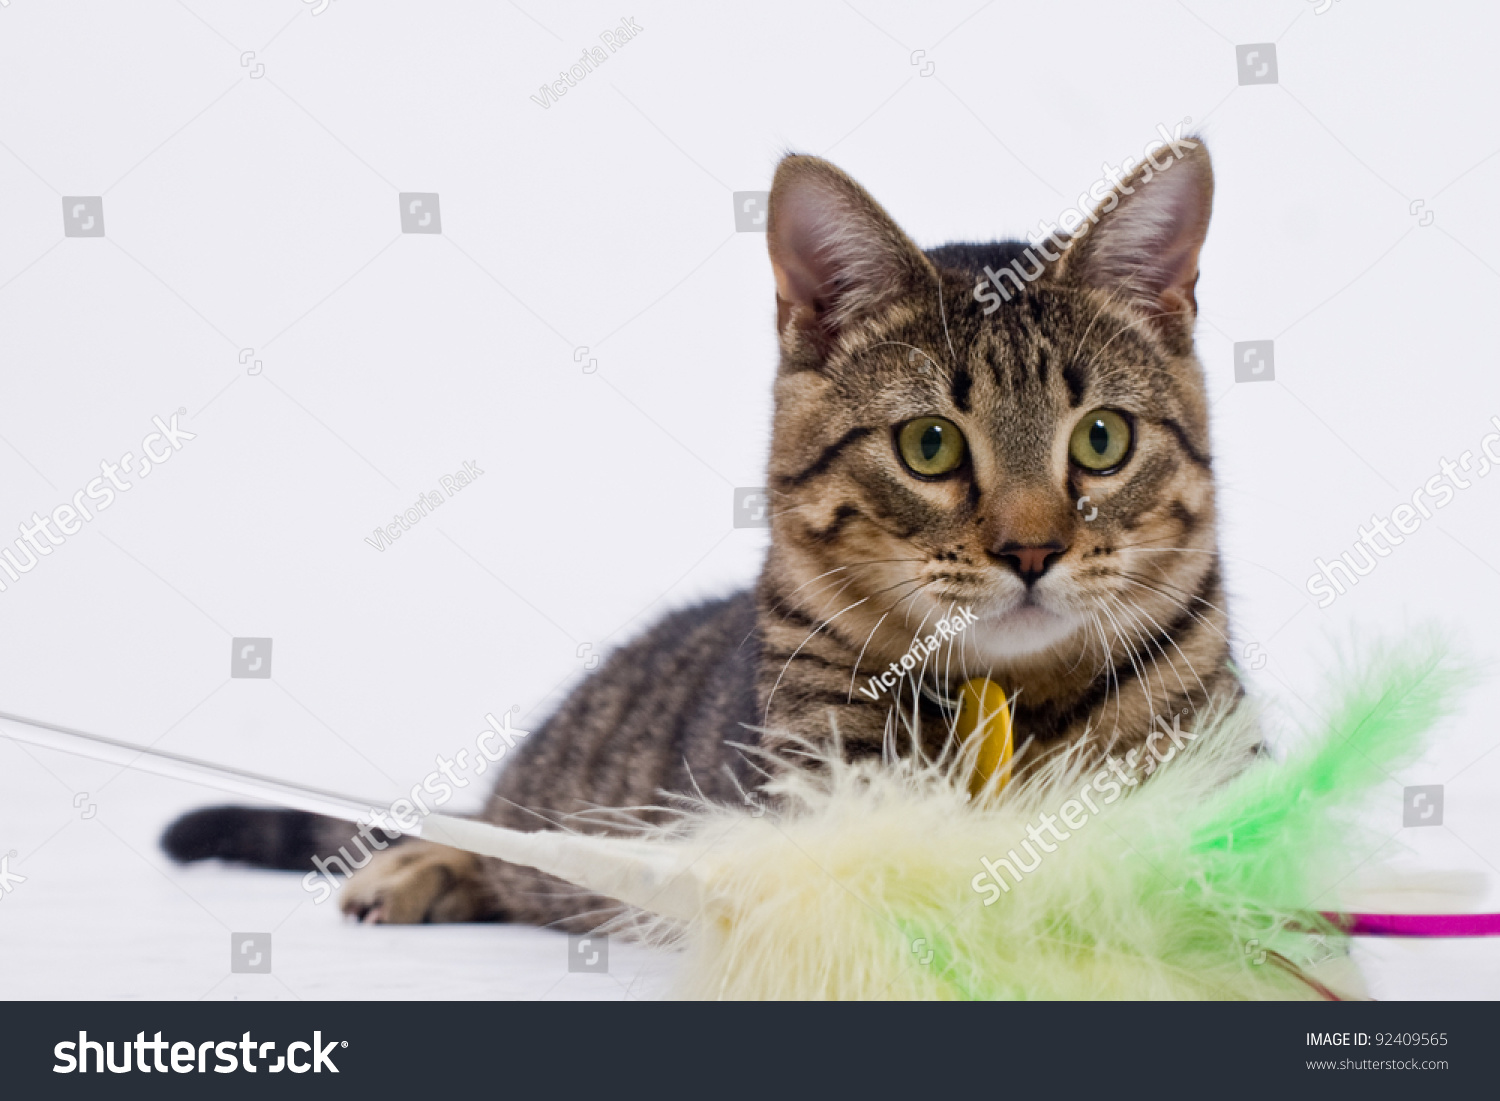 Suggest tiger striped tabby cats that can